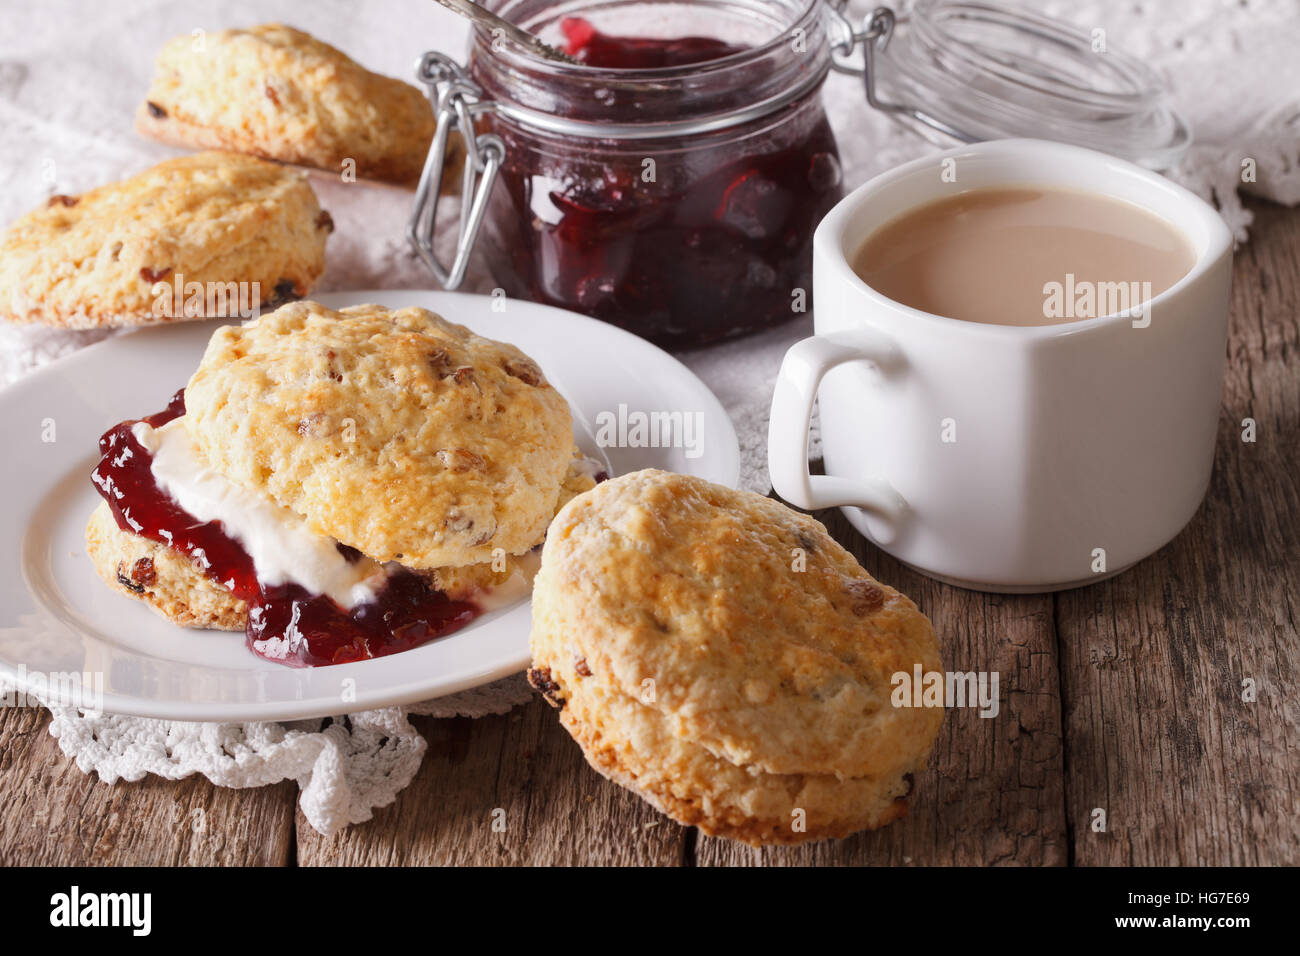 Scones with jam and tea with milk close-up on the table. horizontal - Stock Image